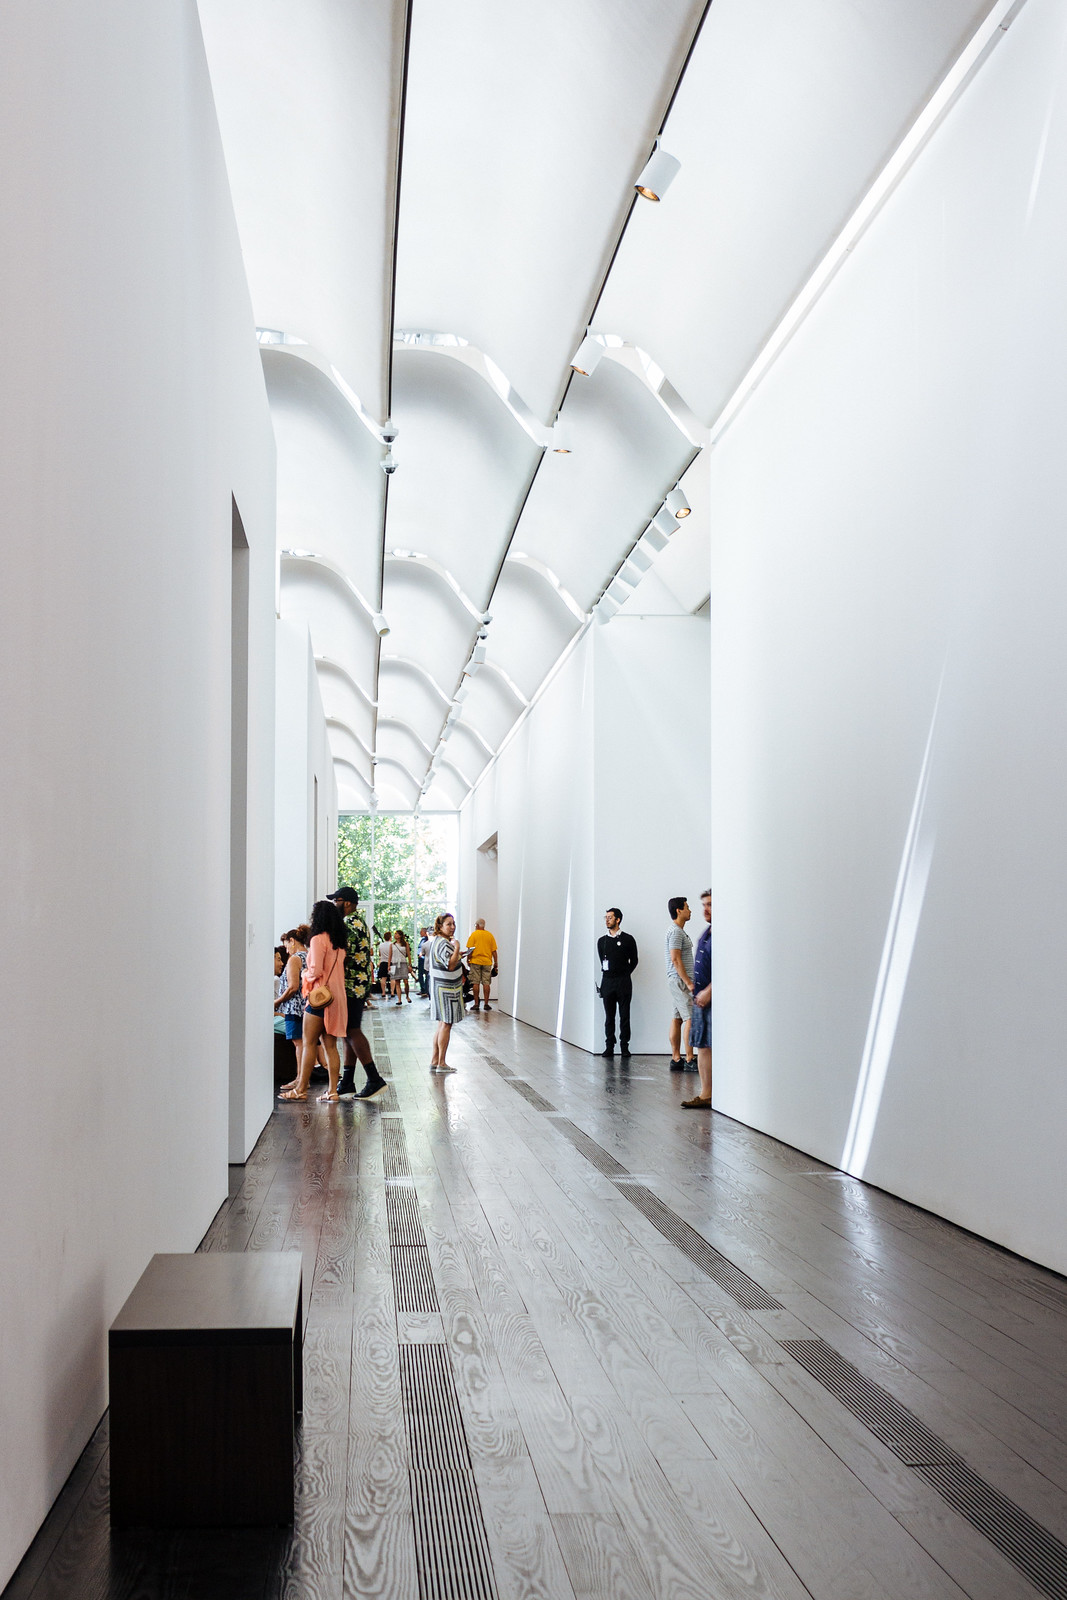 Museum hallway with plain white walls and curved ceiling tiles letting sunlight in